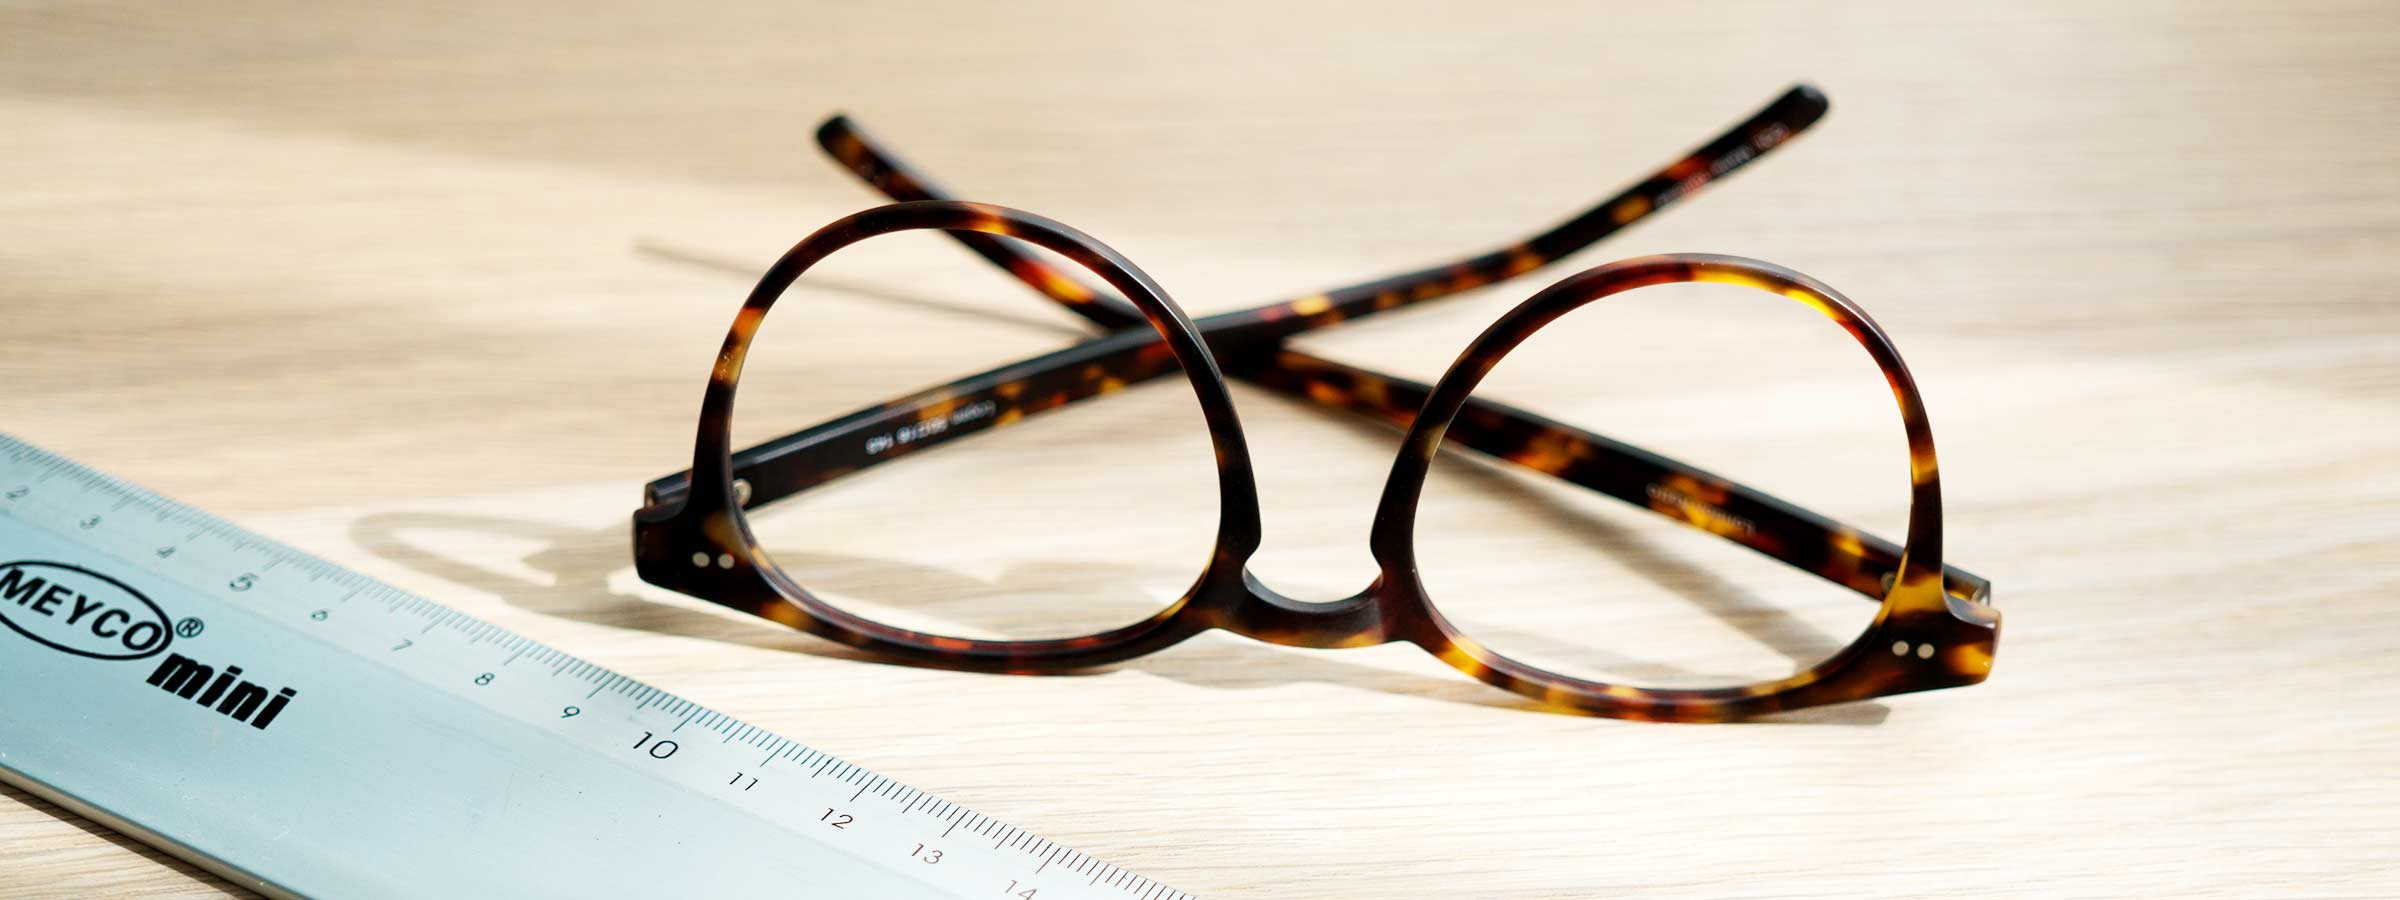 A pair of glasses next to a ruler